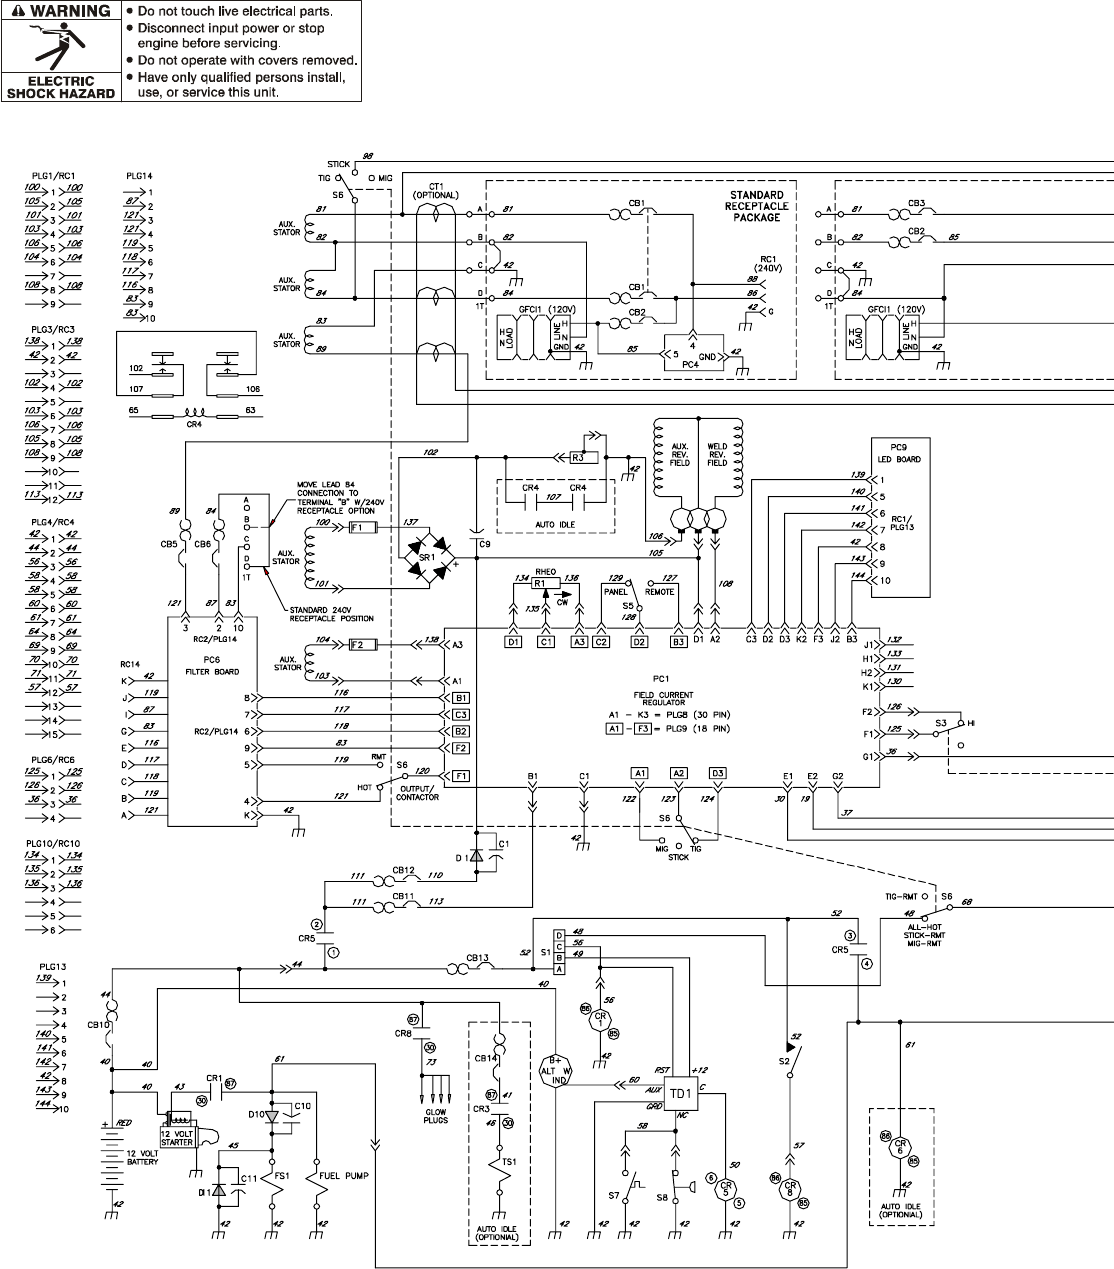 hight resolution of miller bobcat 250 wiring diagram wiring diagram for you miller bobcat 250 wiring diagram miller bobcat